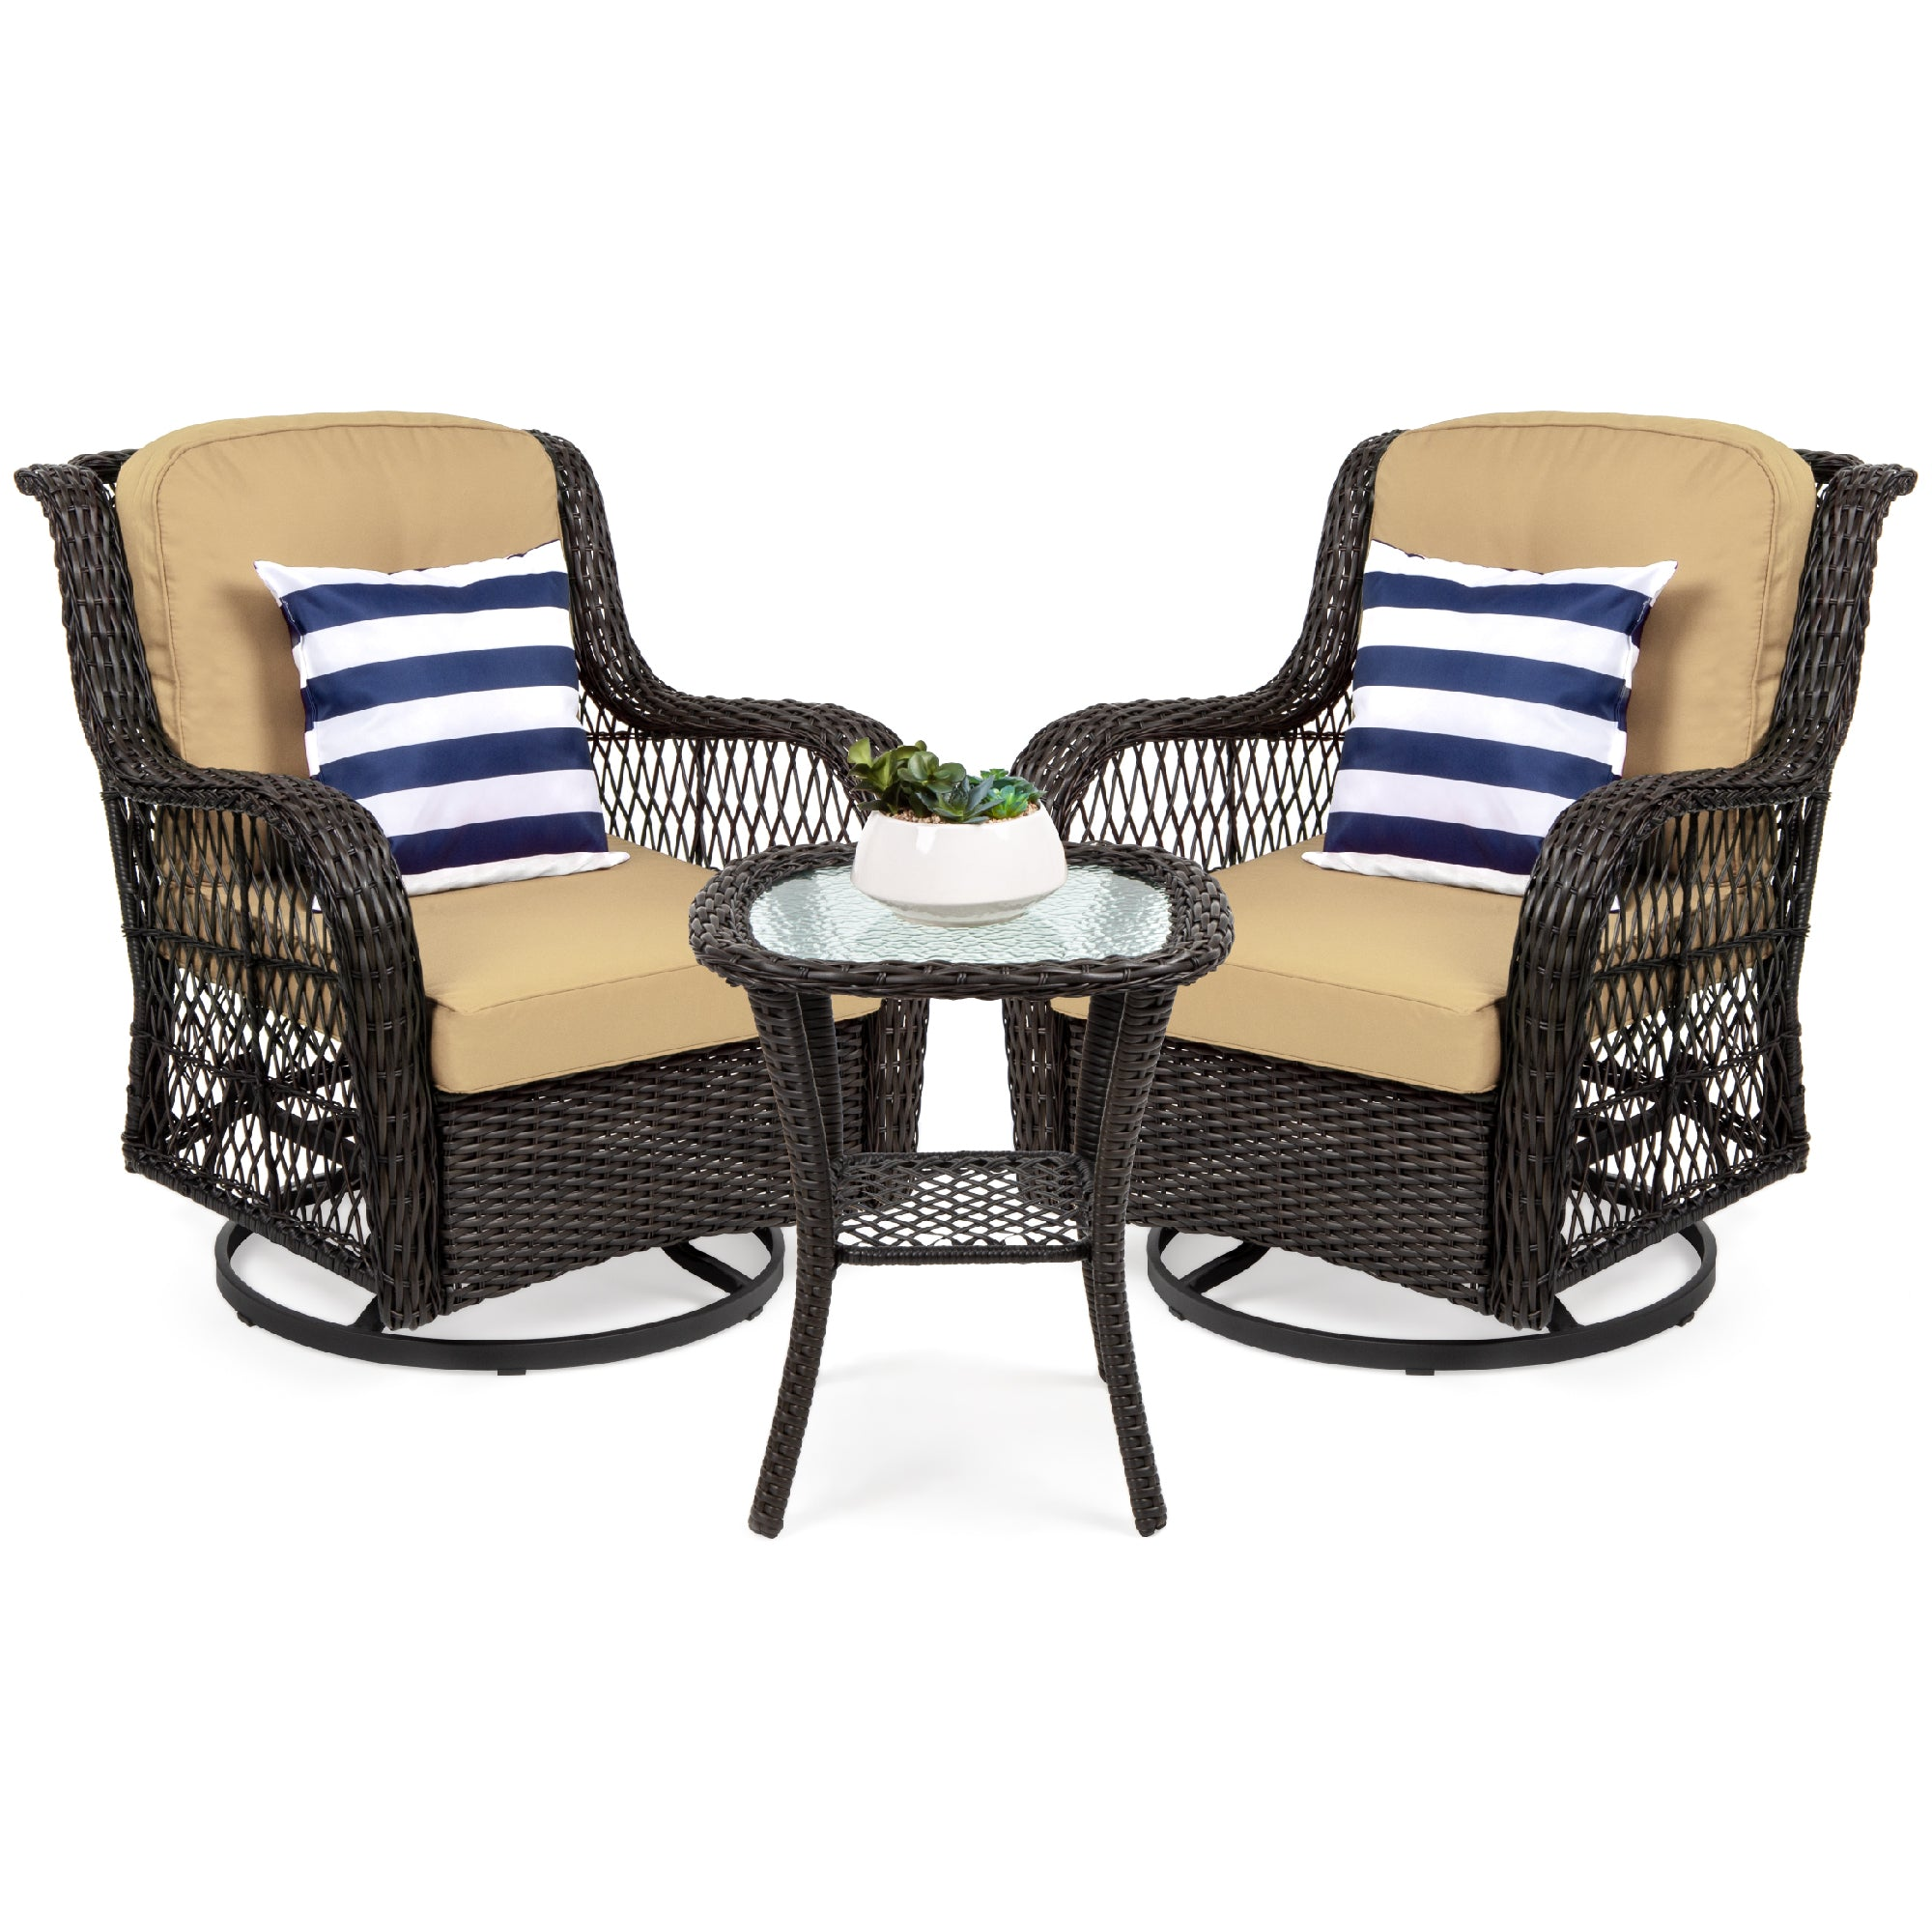 Patio Furniture Sets With Swivel Chairs.3 Piece Patio Wicker Bistro Furniture Set W 2 Swivel Rocking Chairs Table